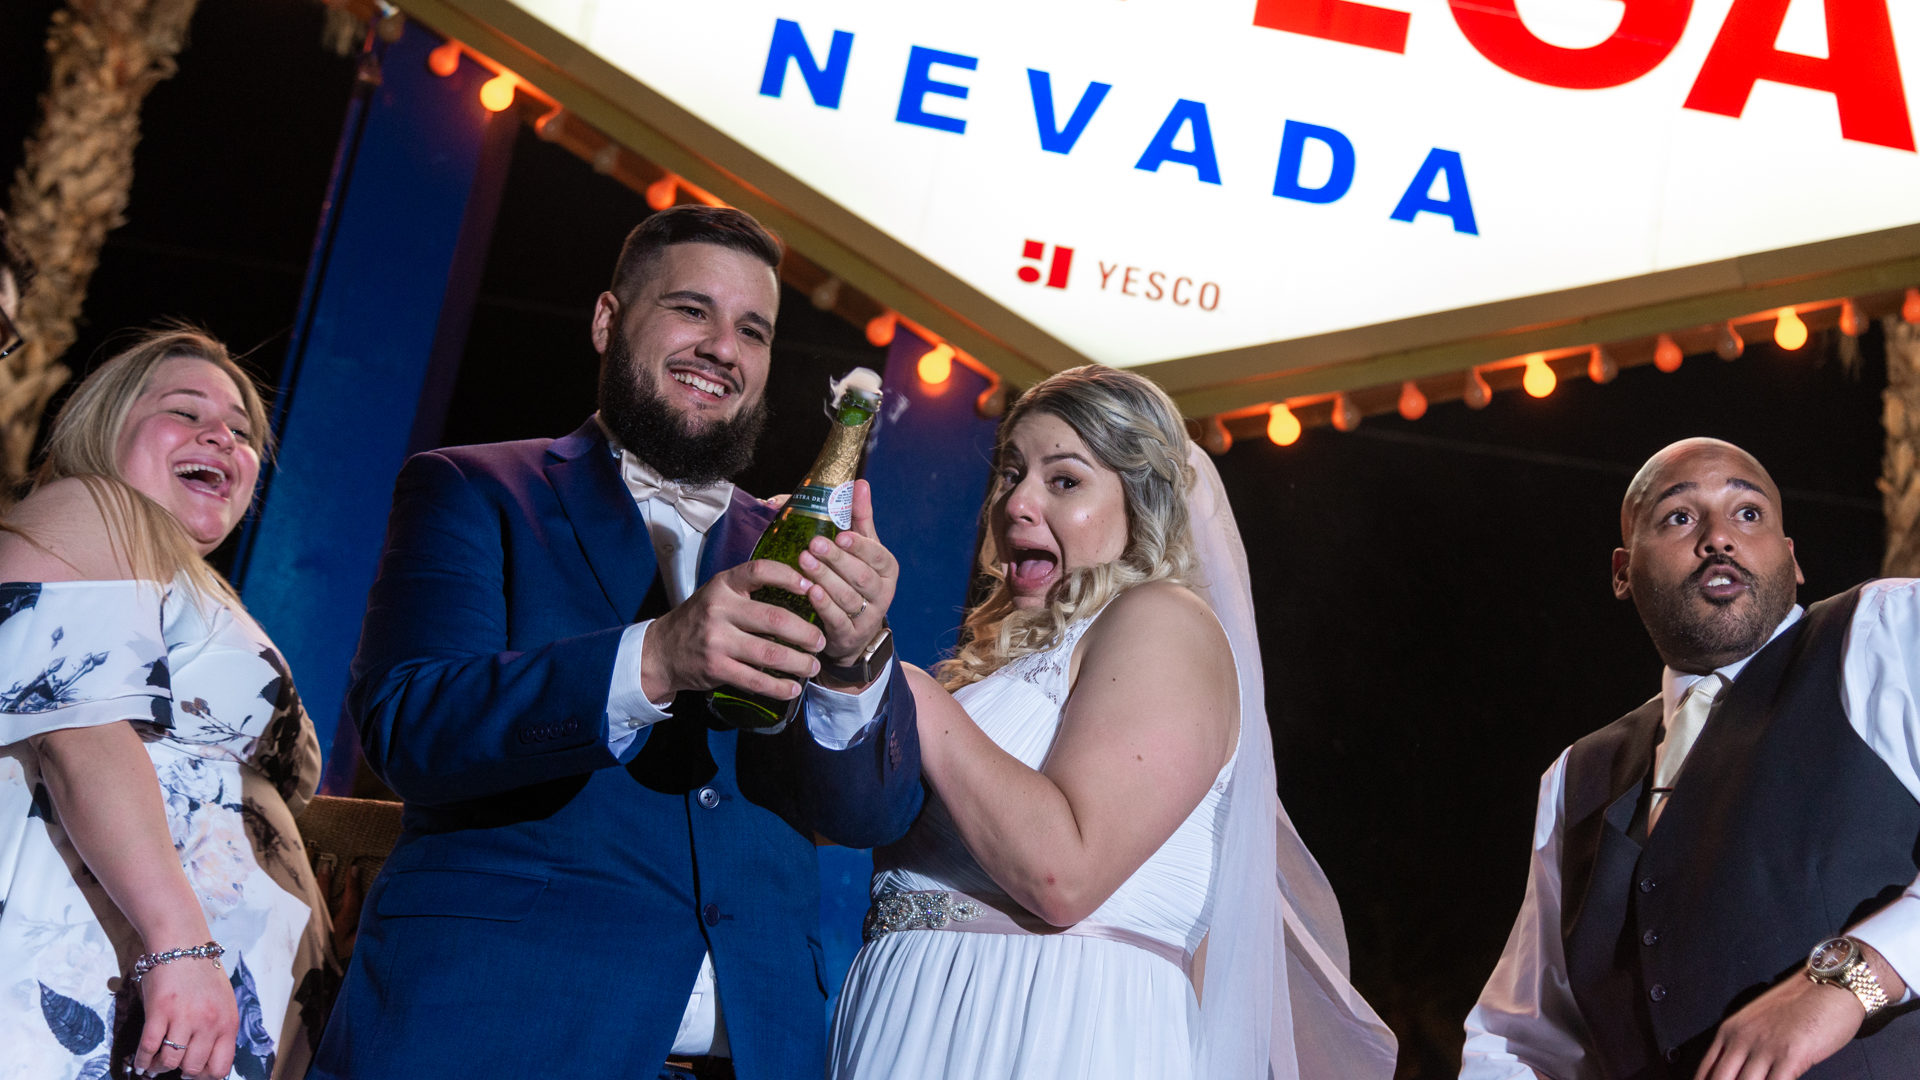 Photographers of Las Vegas